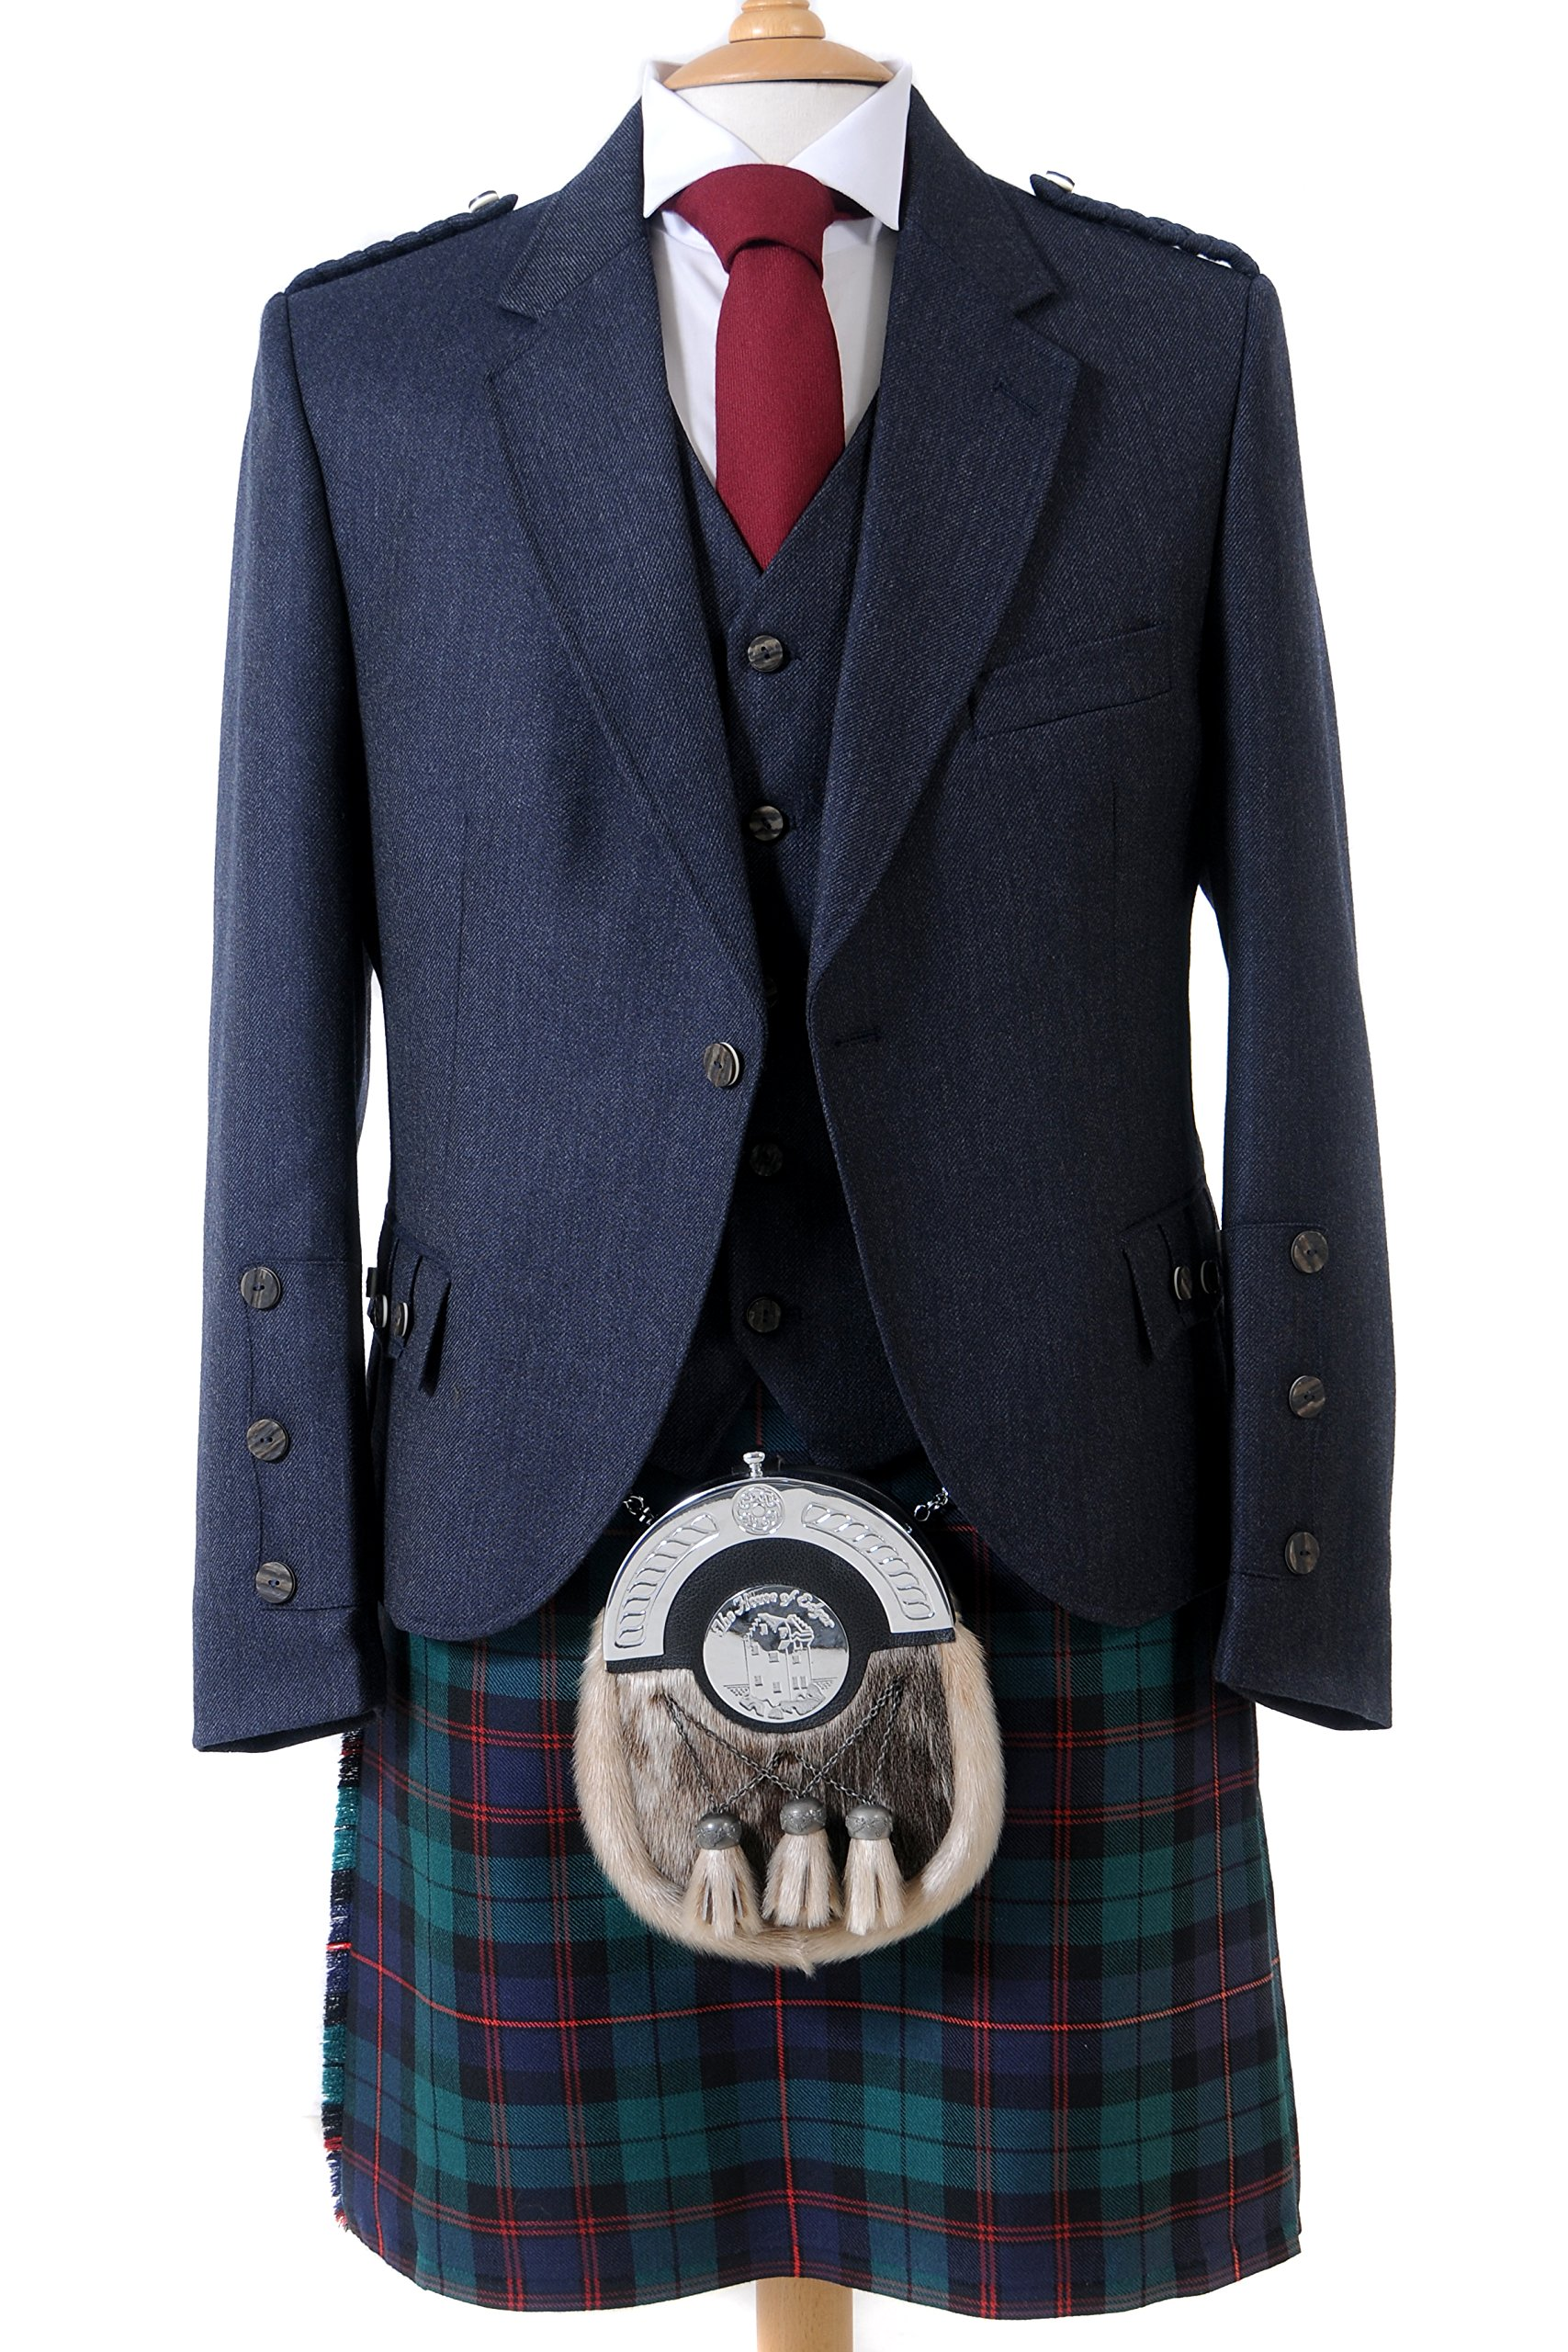 Crail Highland Kilt Jacket and Five Button Waistcoat in Midnight Blue Arrochar Tweed - Long Fit